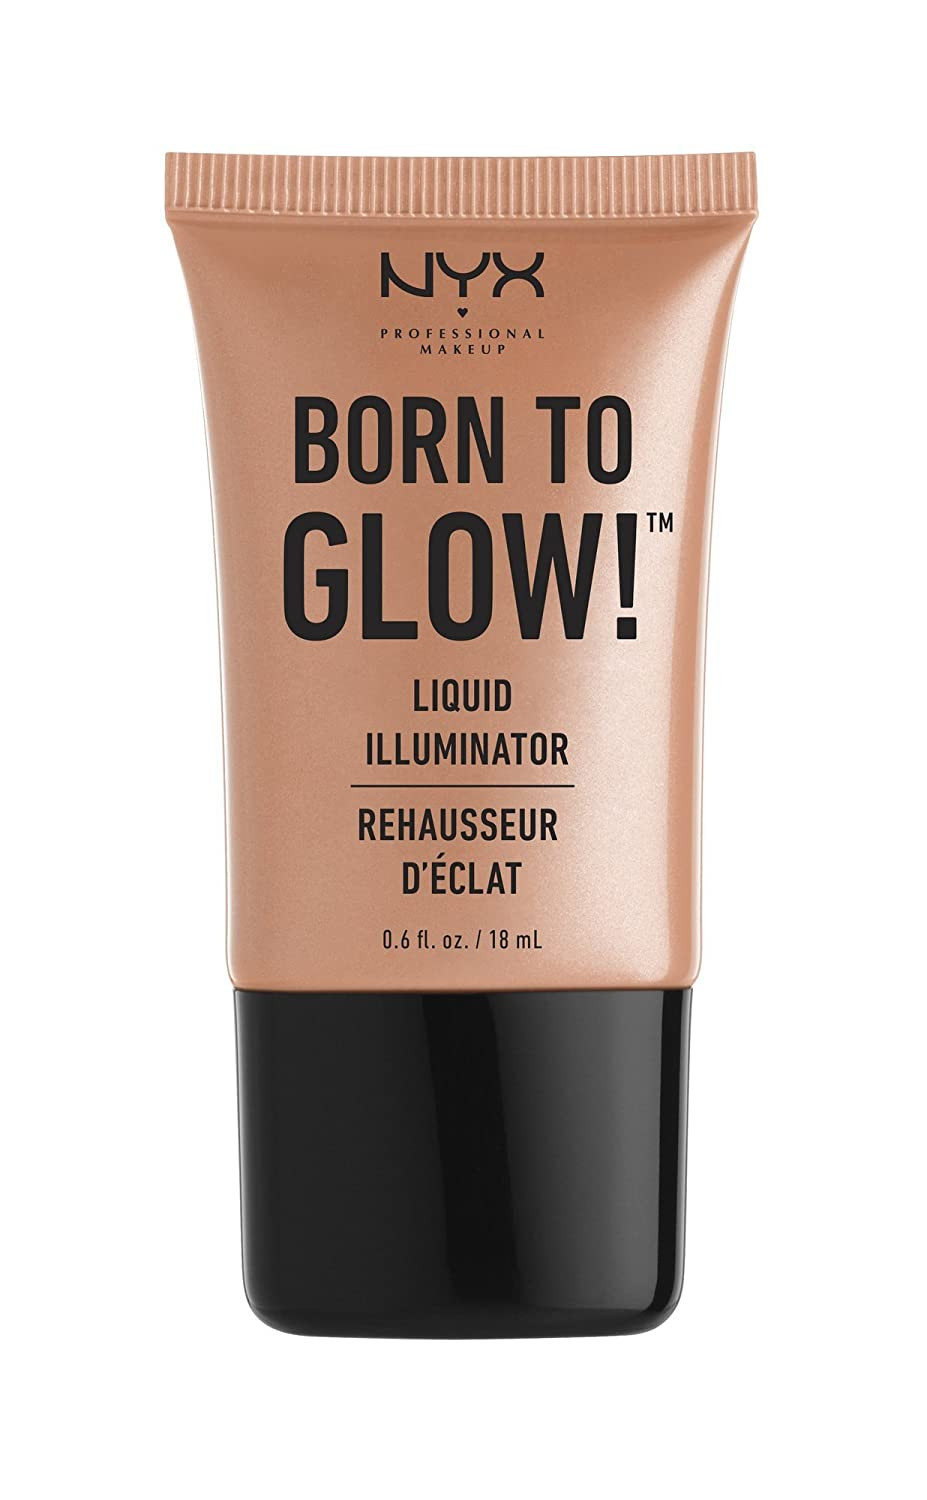 Nyx - Iluminador born to glow liquid gleam professional makeup 0800897818449